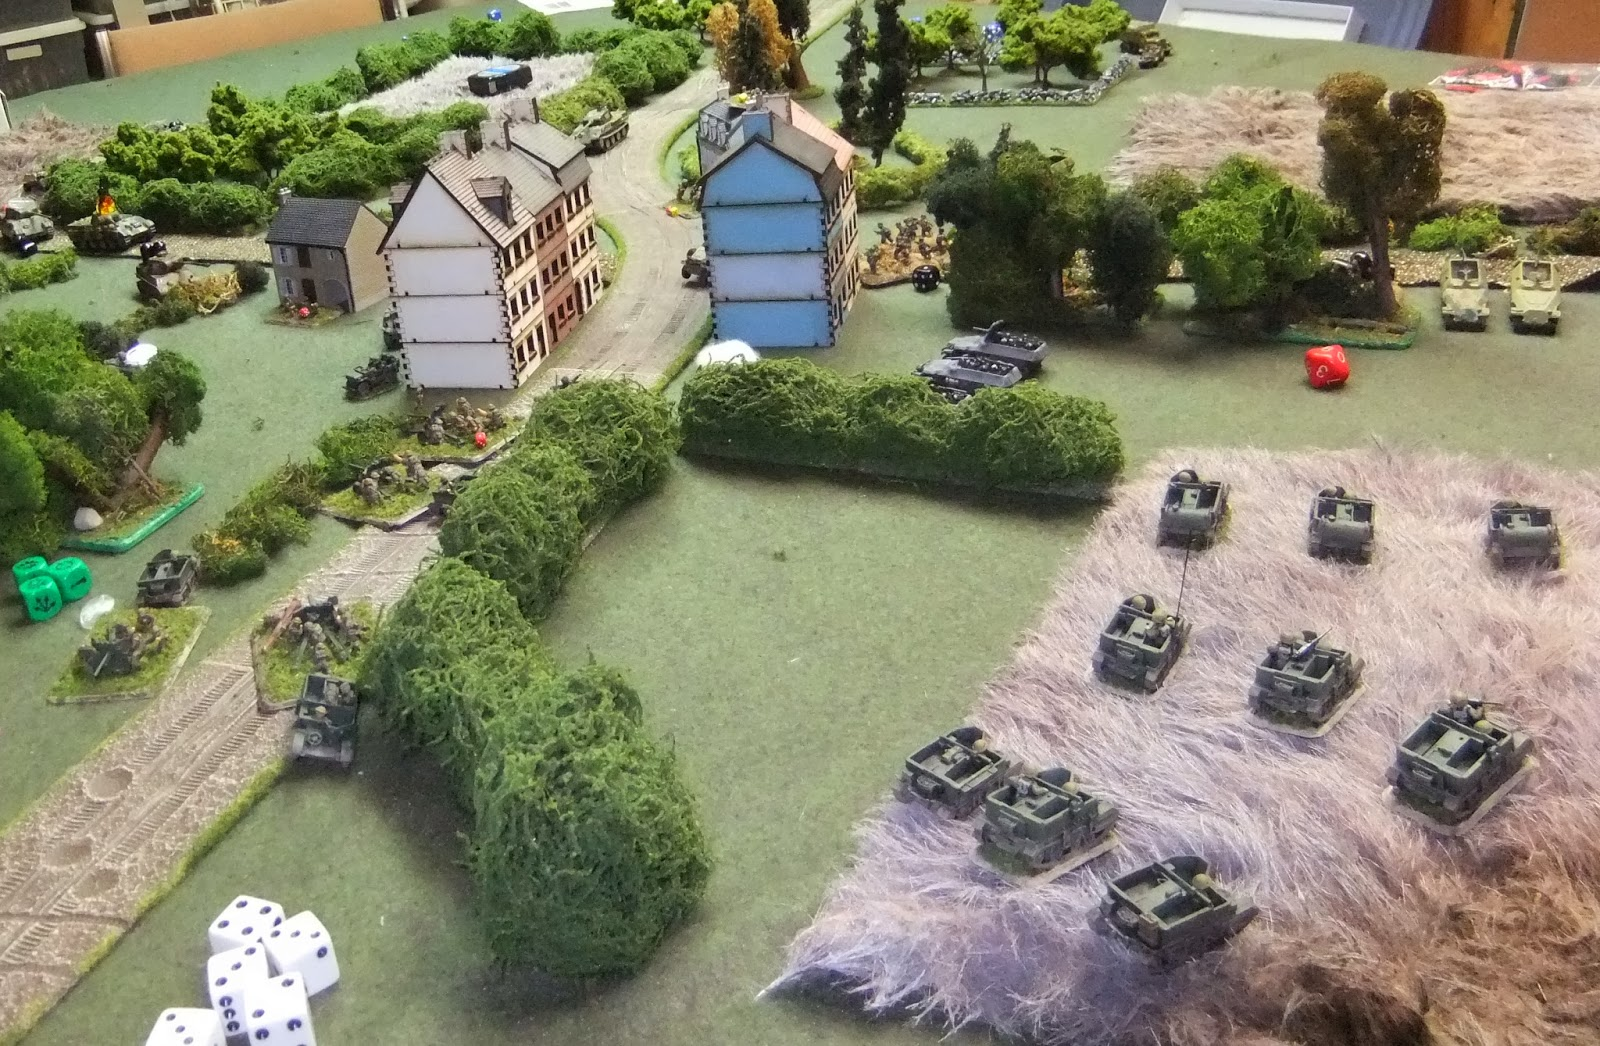 AT Plt deploys to engage Panthers while Carrier Plt outflanks the Germans